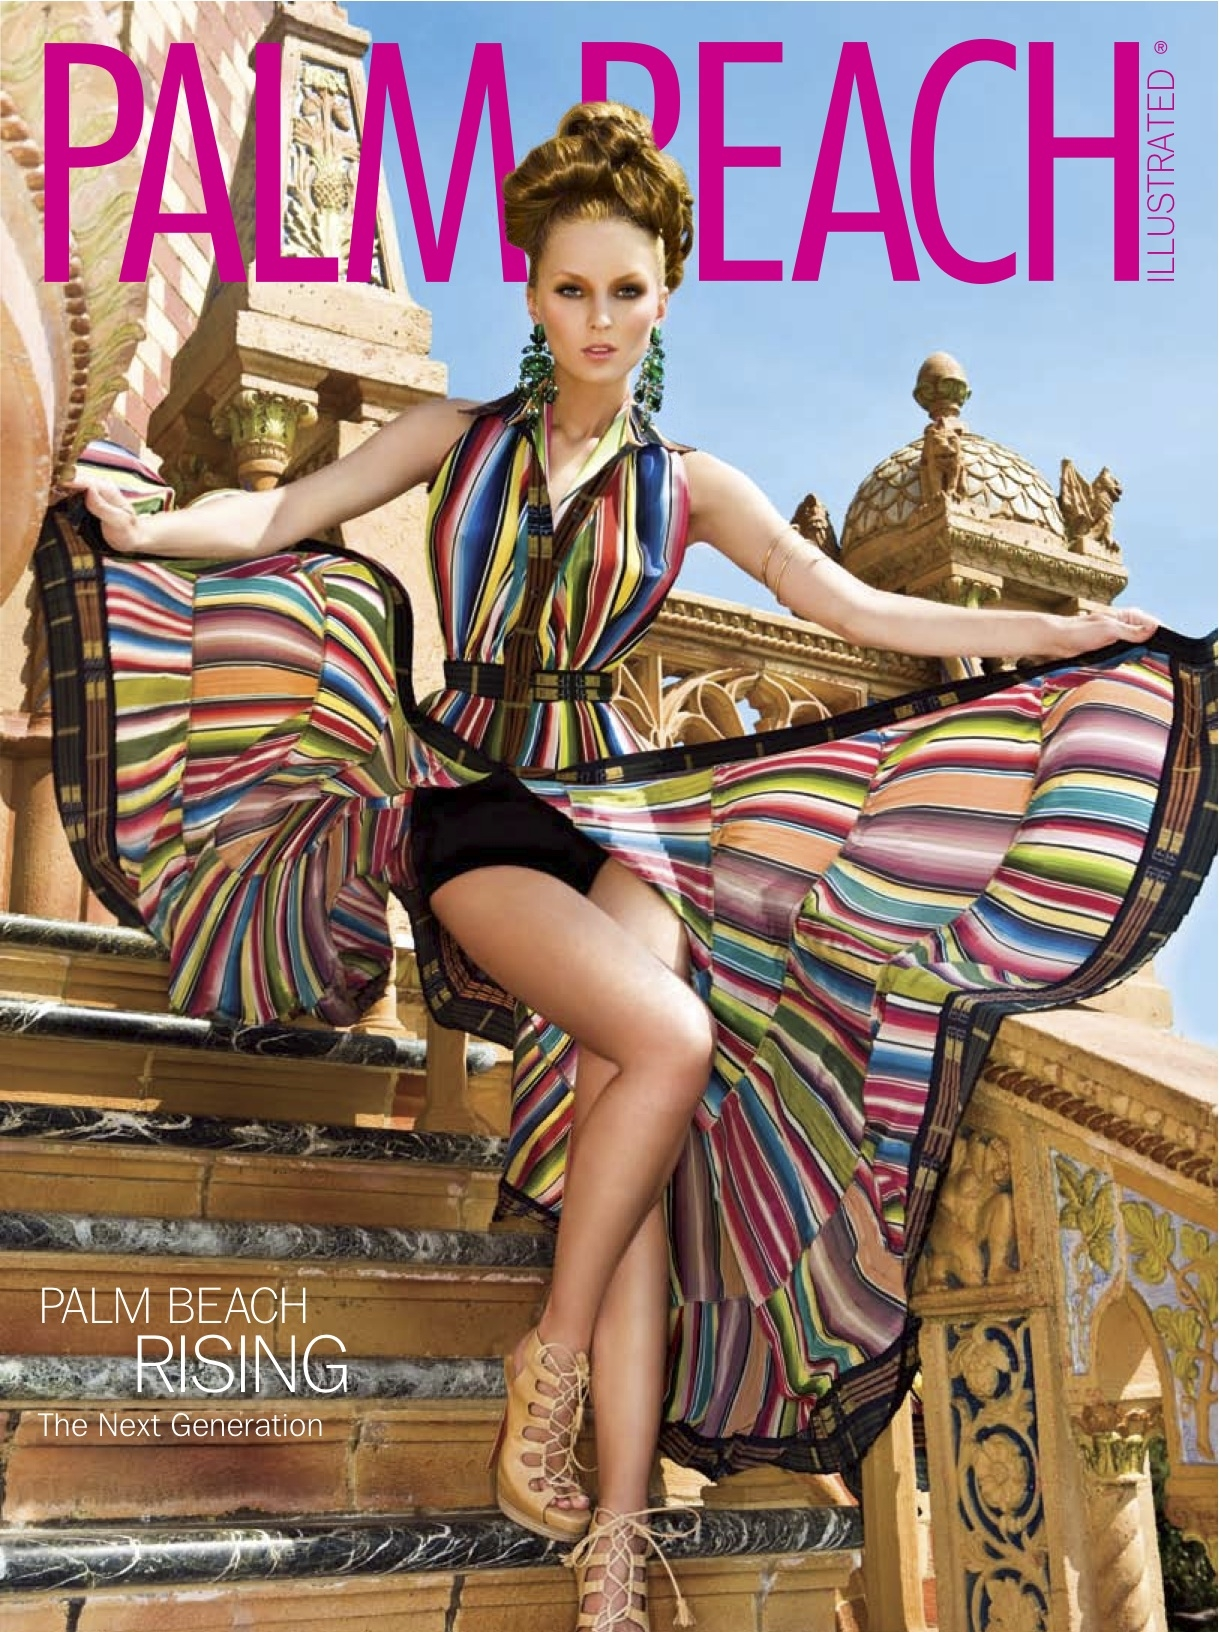 Palm Beach Illustrated June 2009